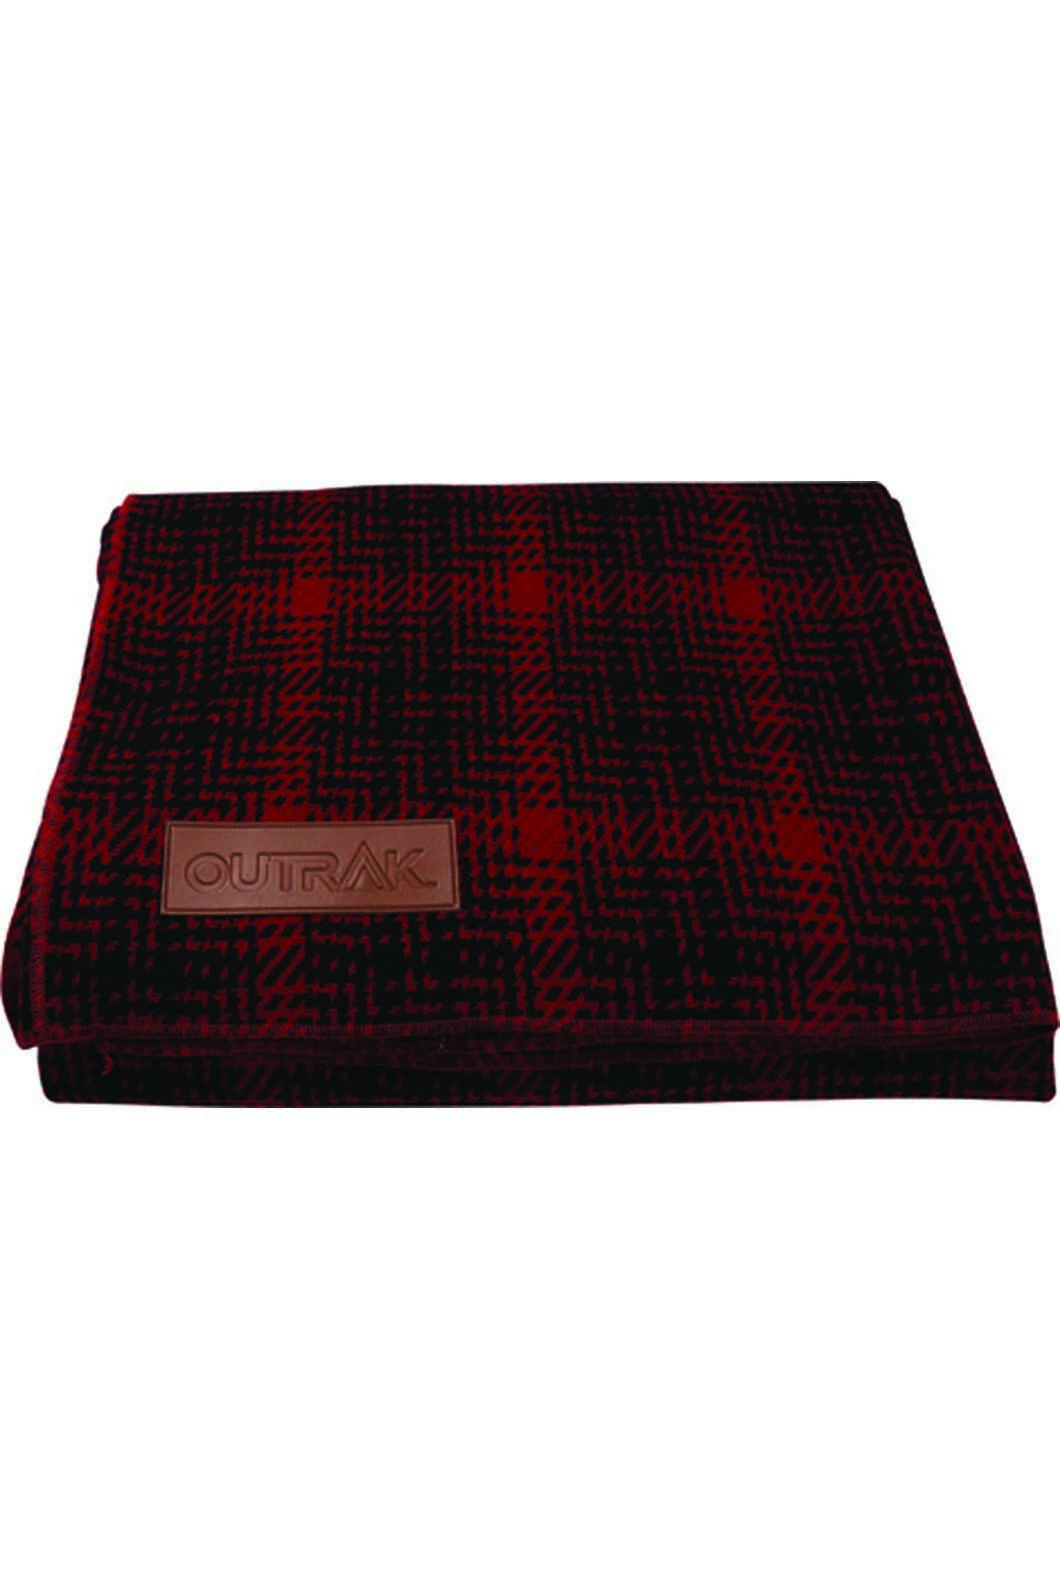 Outrak Camp Blanket, None, hi-res